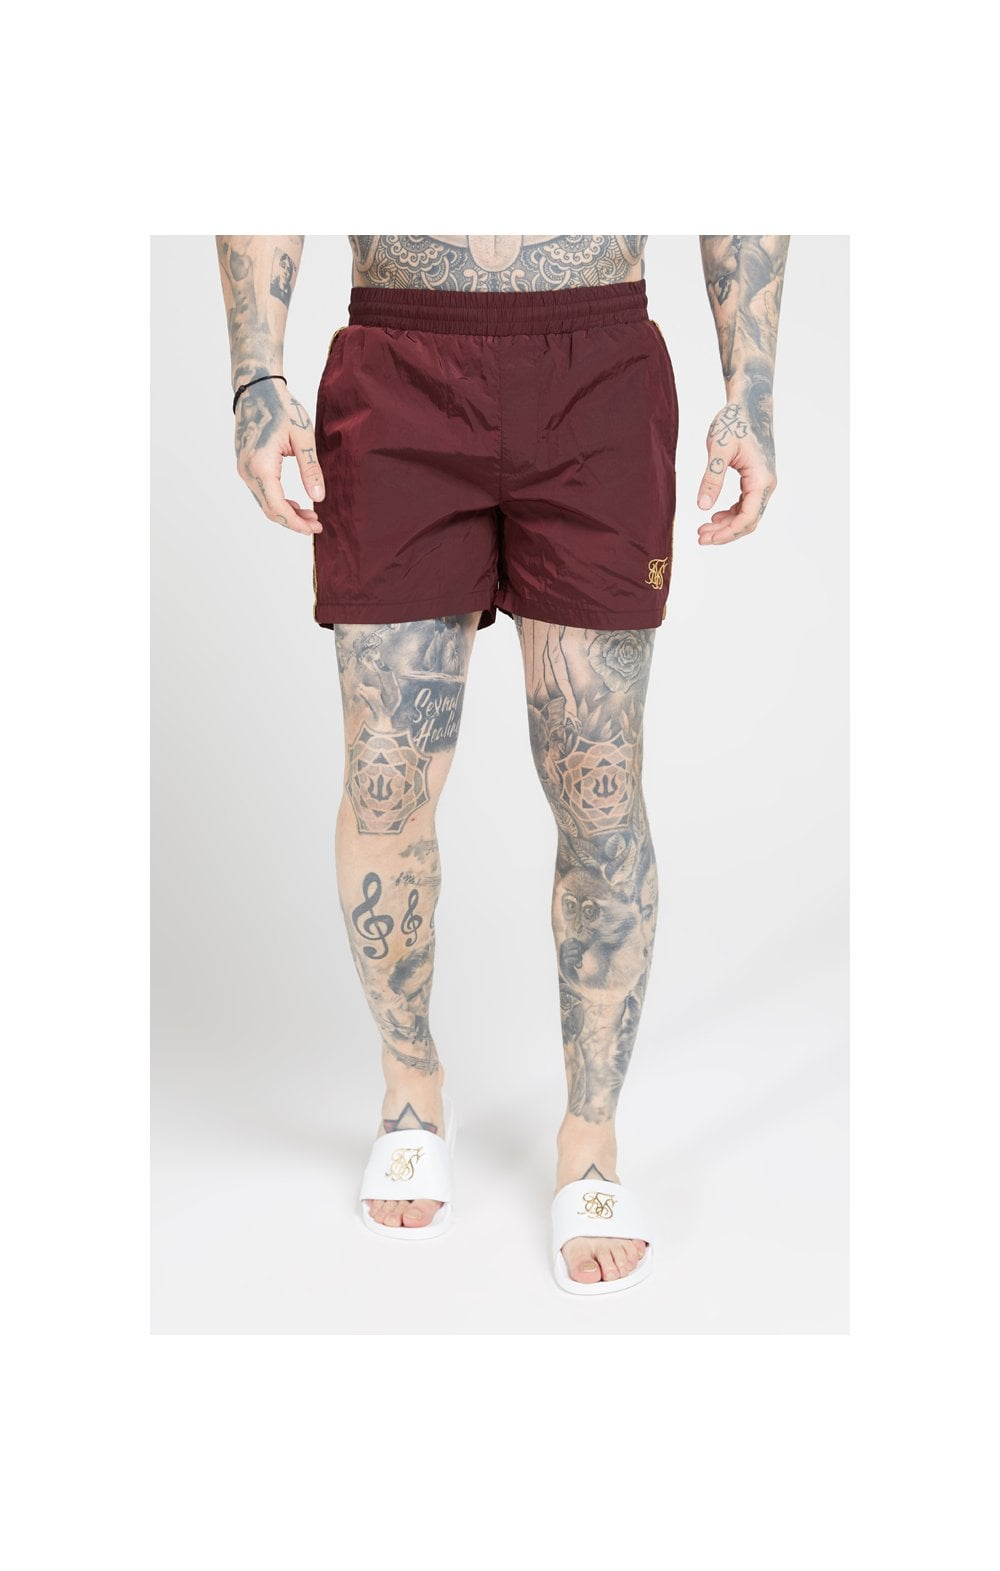 SikSilk Crushed Nylon Tape Shorts – Burgundy & Gold